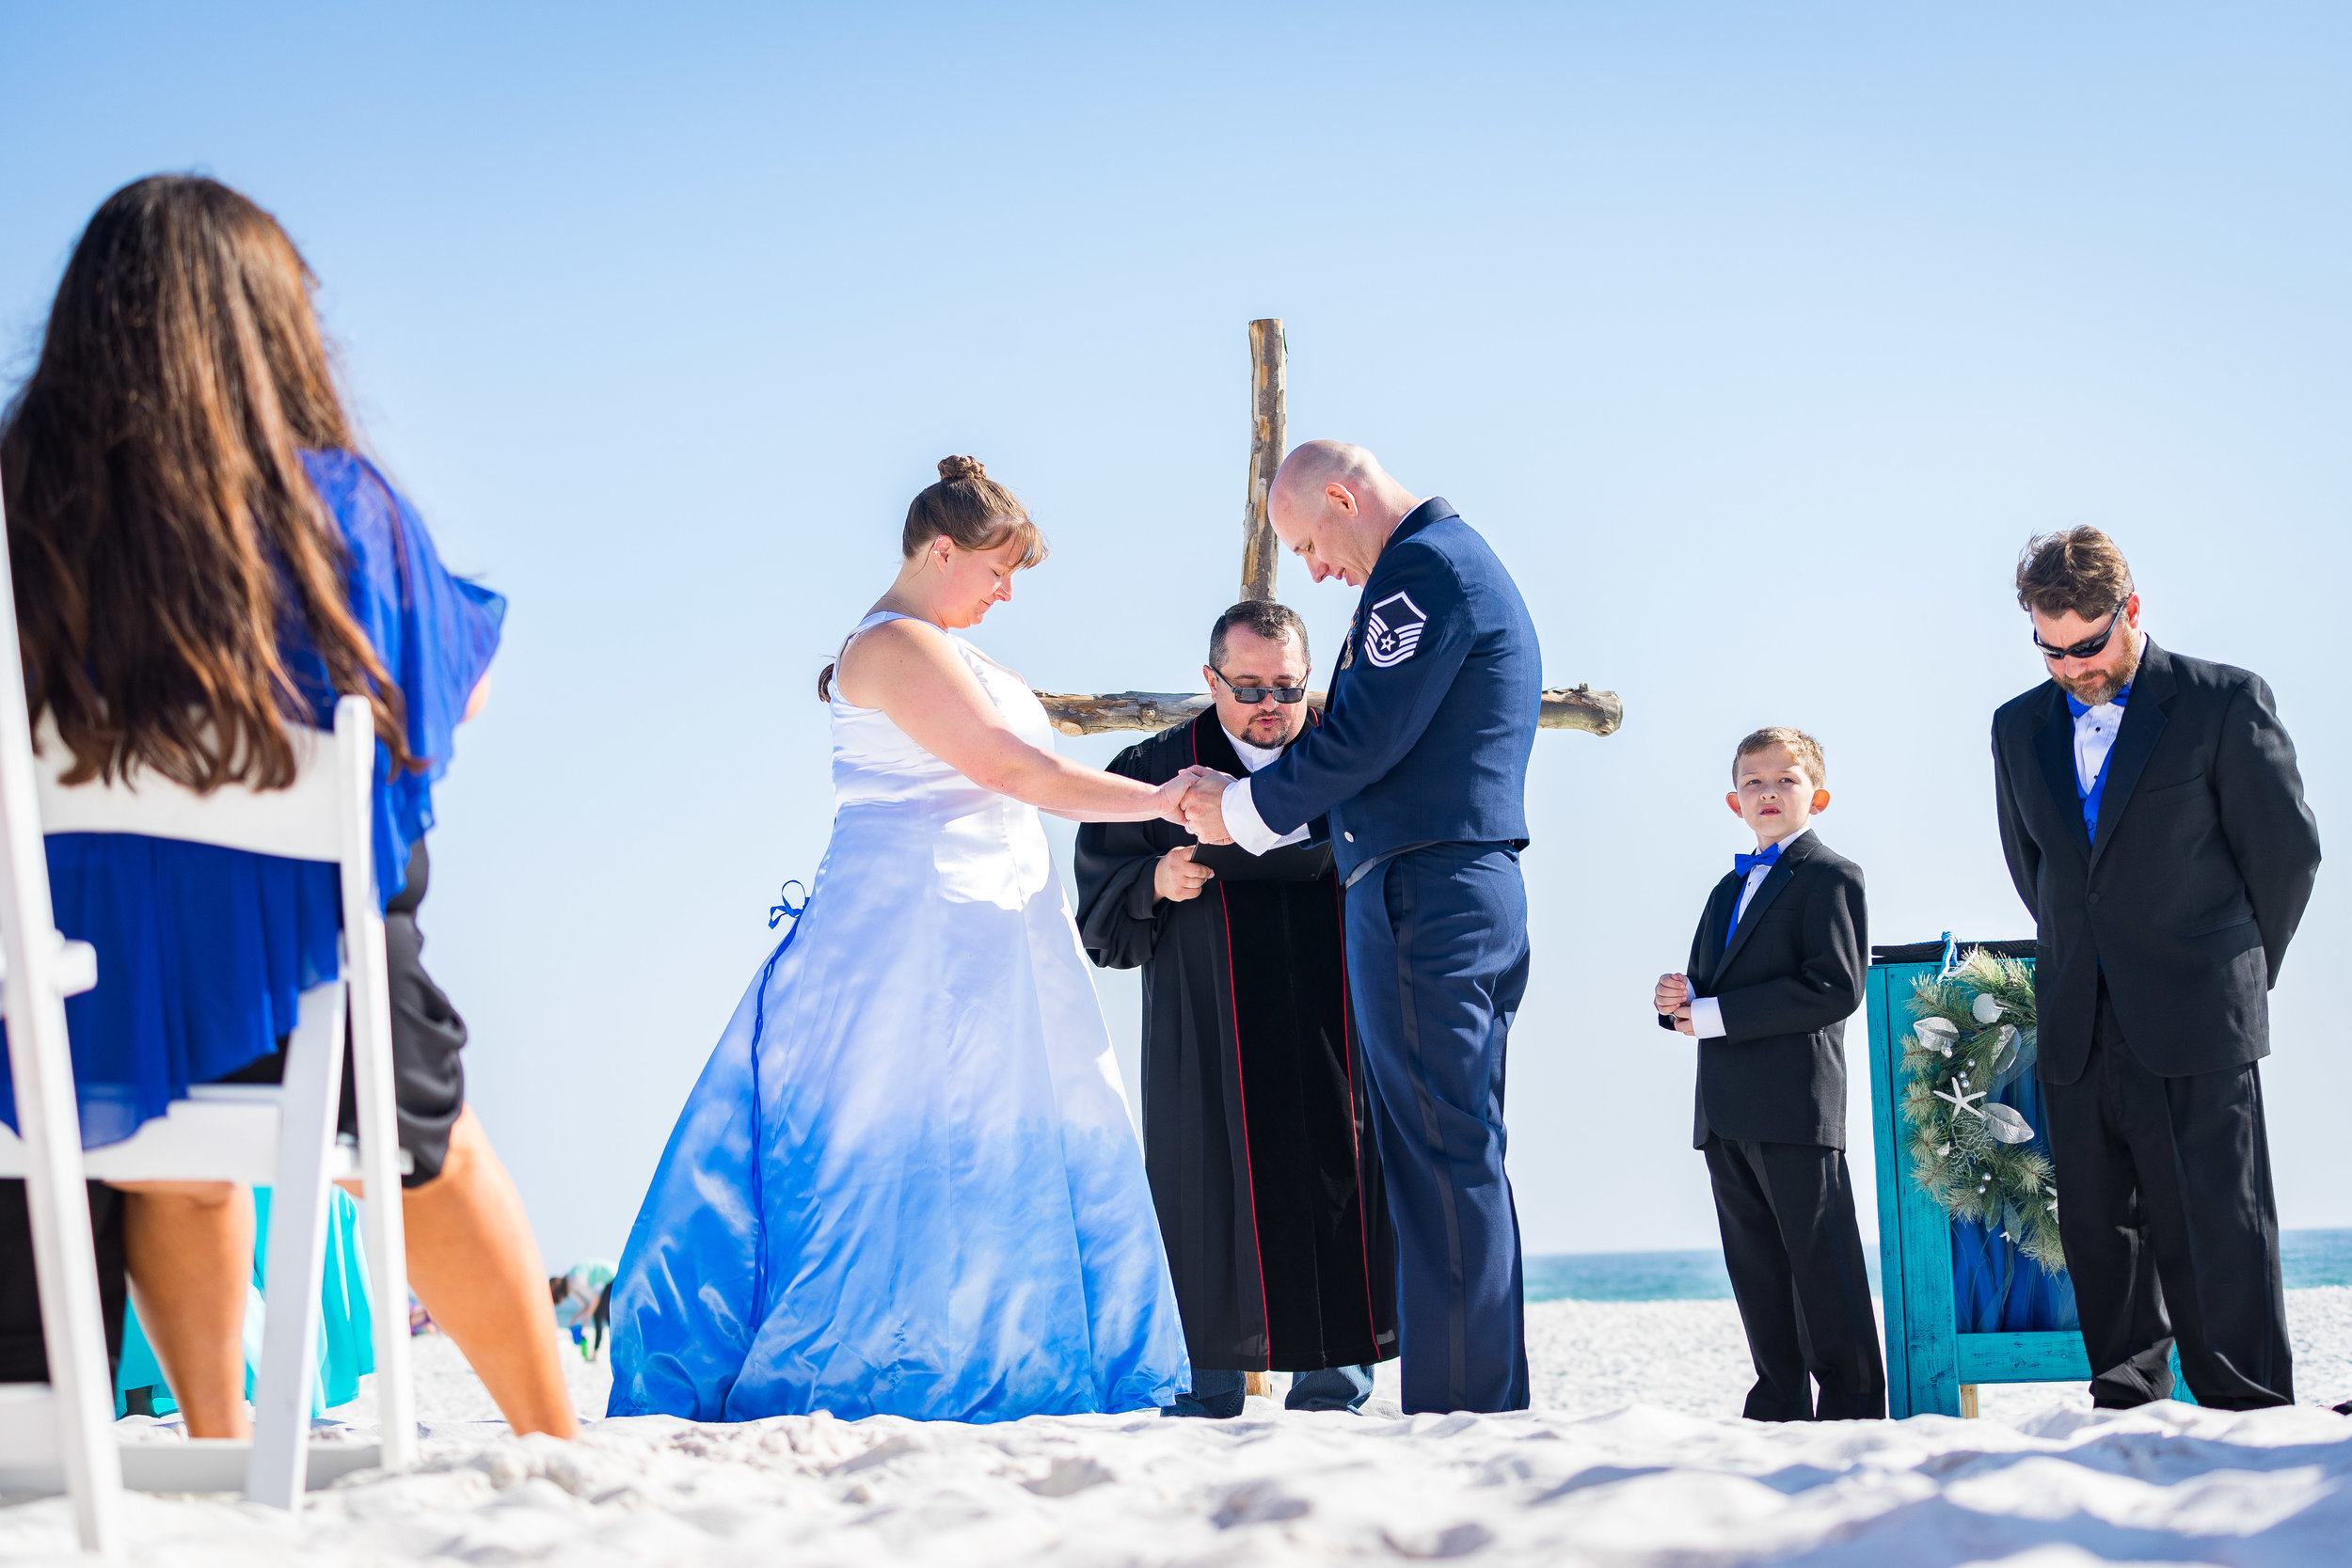 image by photographer adam cotton of bride and groom praying during a pensacola beach florida wedding ceremony